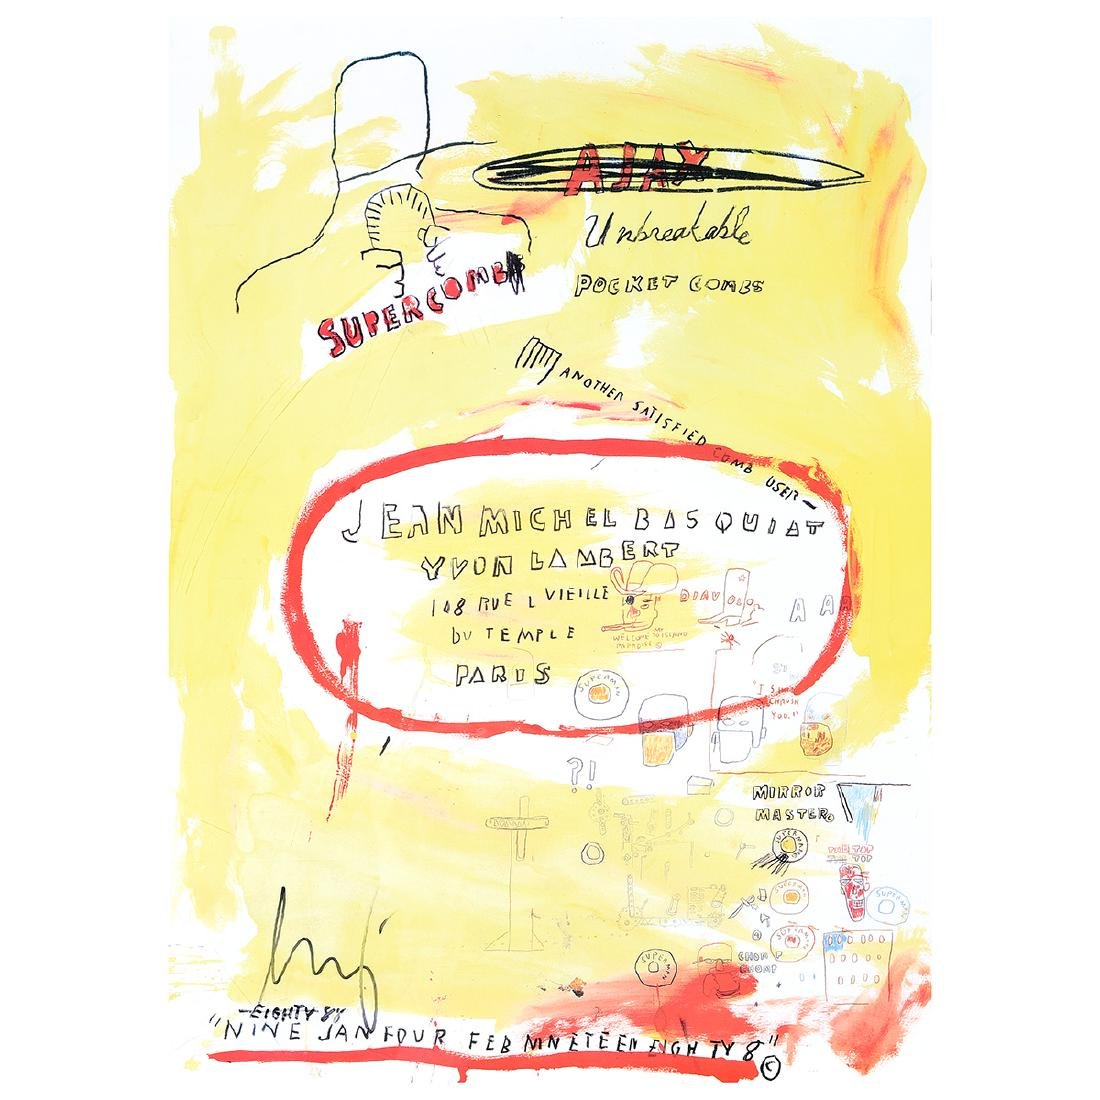 """Jean-Michel Basquiat """"Supercomb"""" exhibition poster from"""